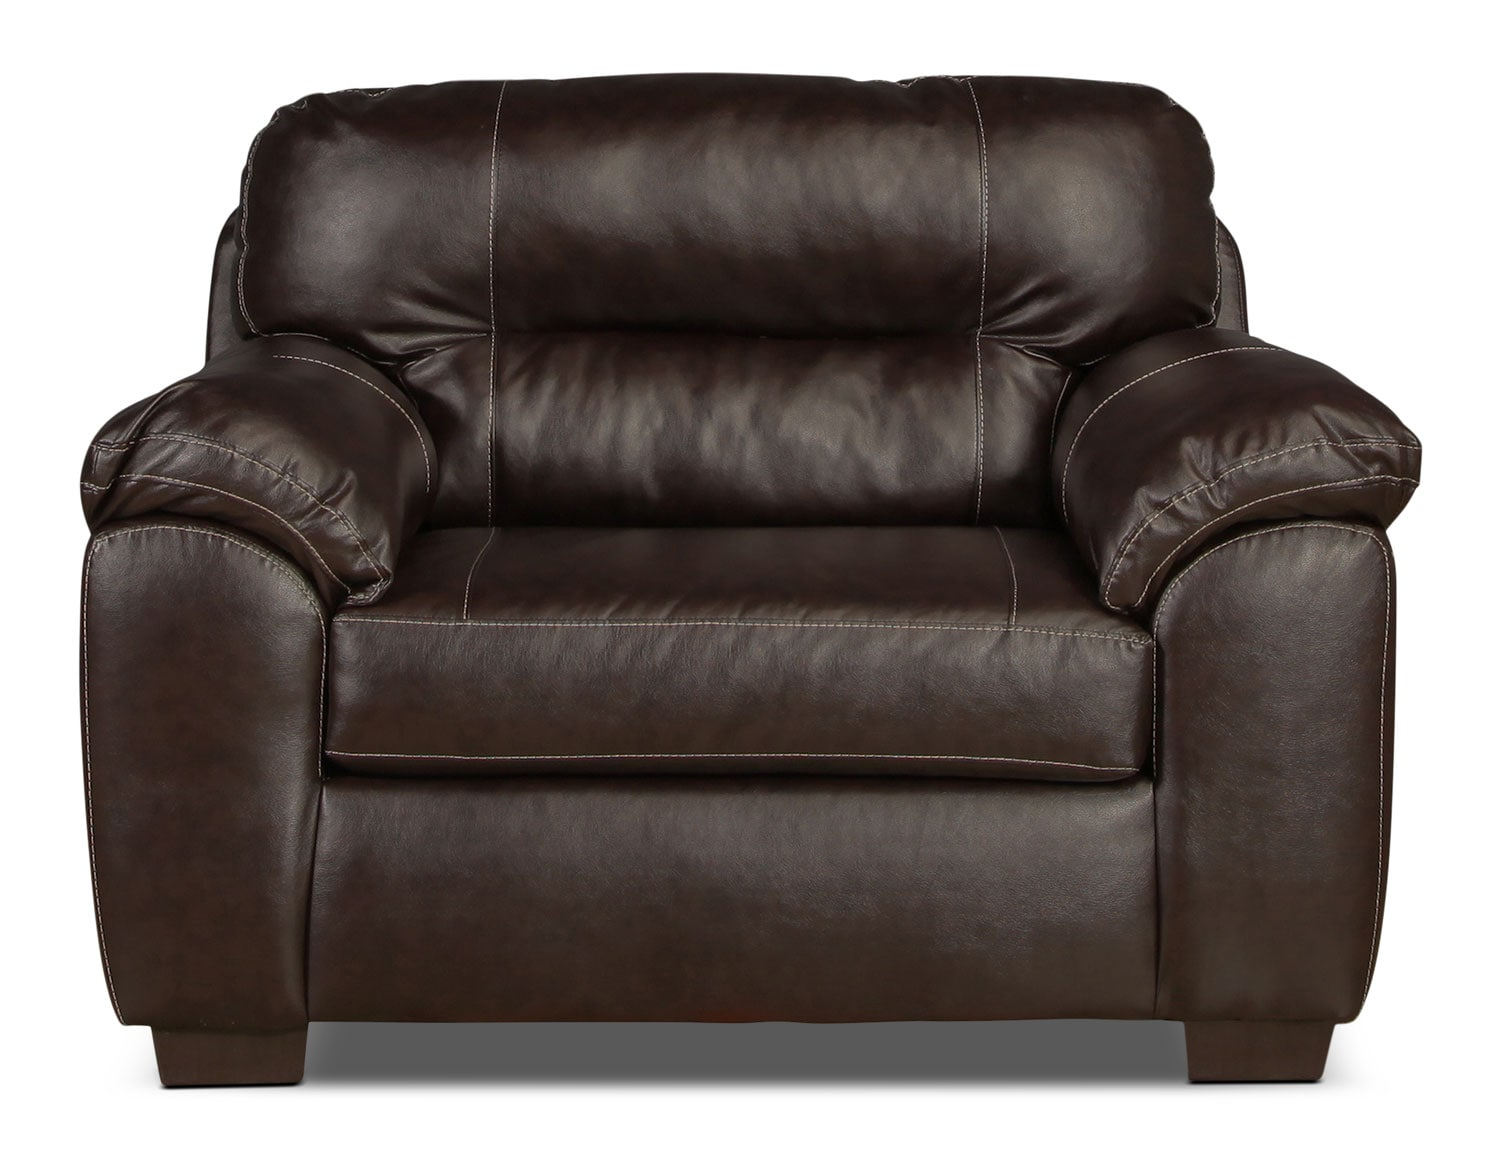 Living Room Furniture - Rigley Chair - Chocolate